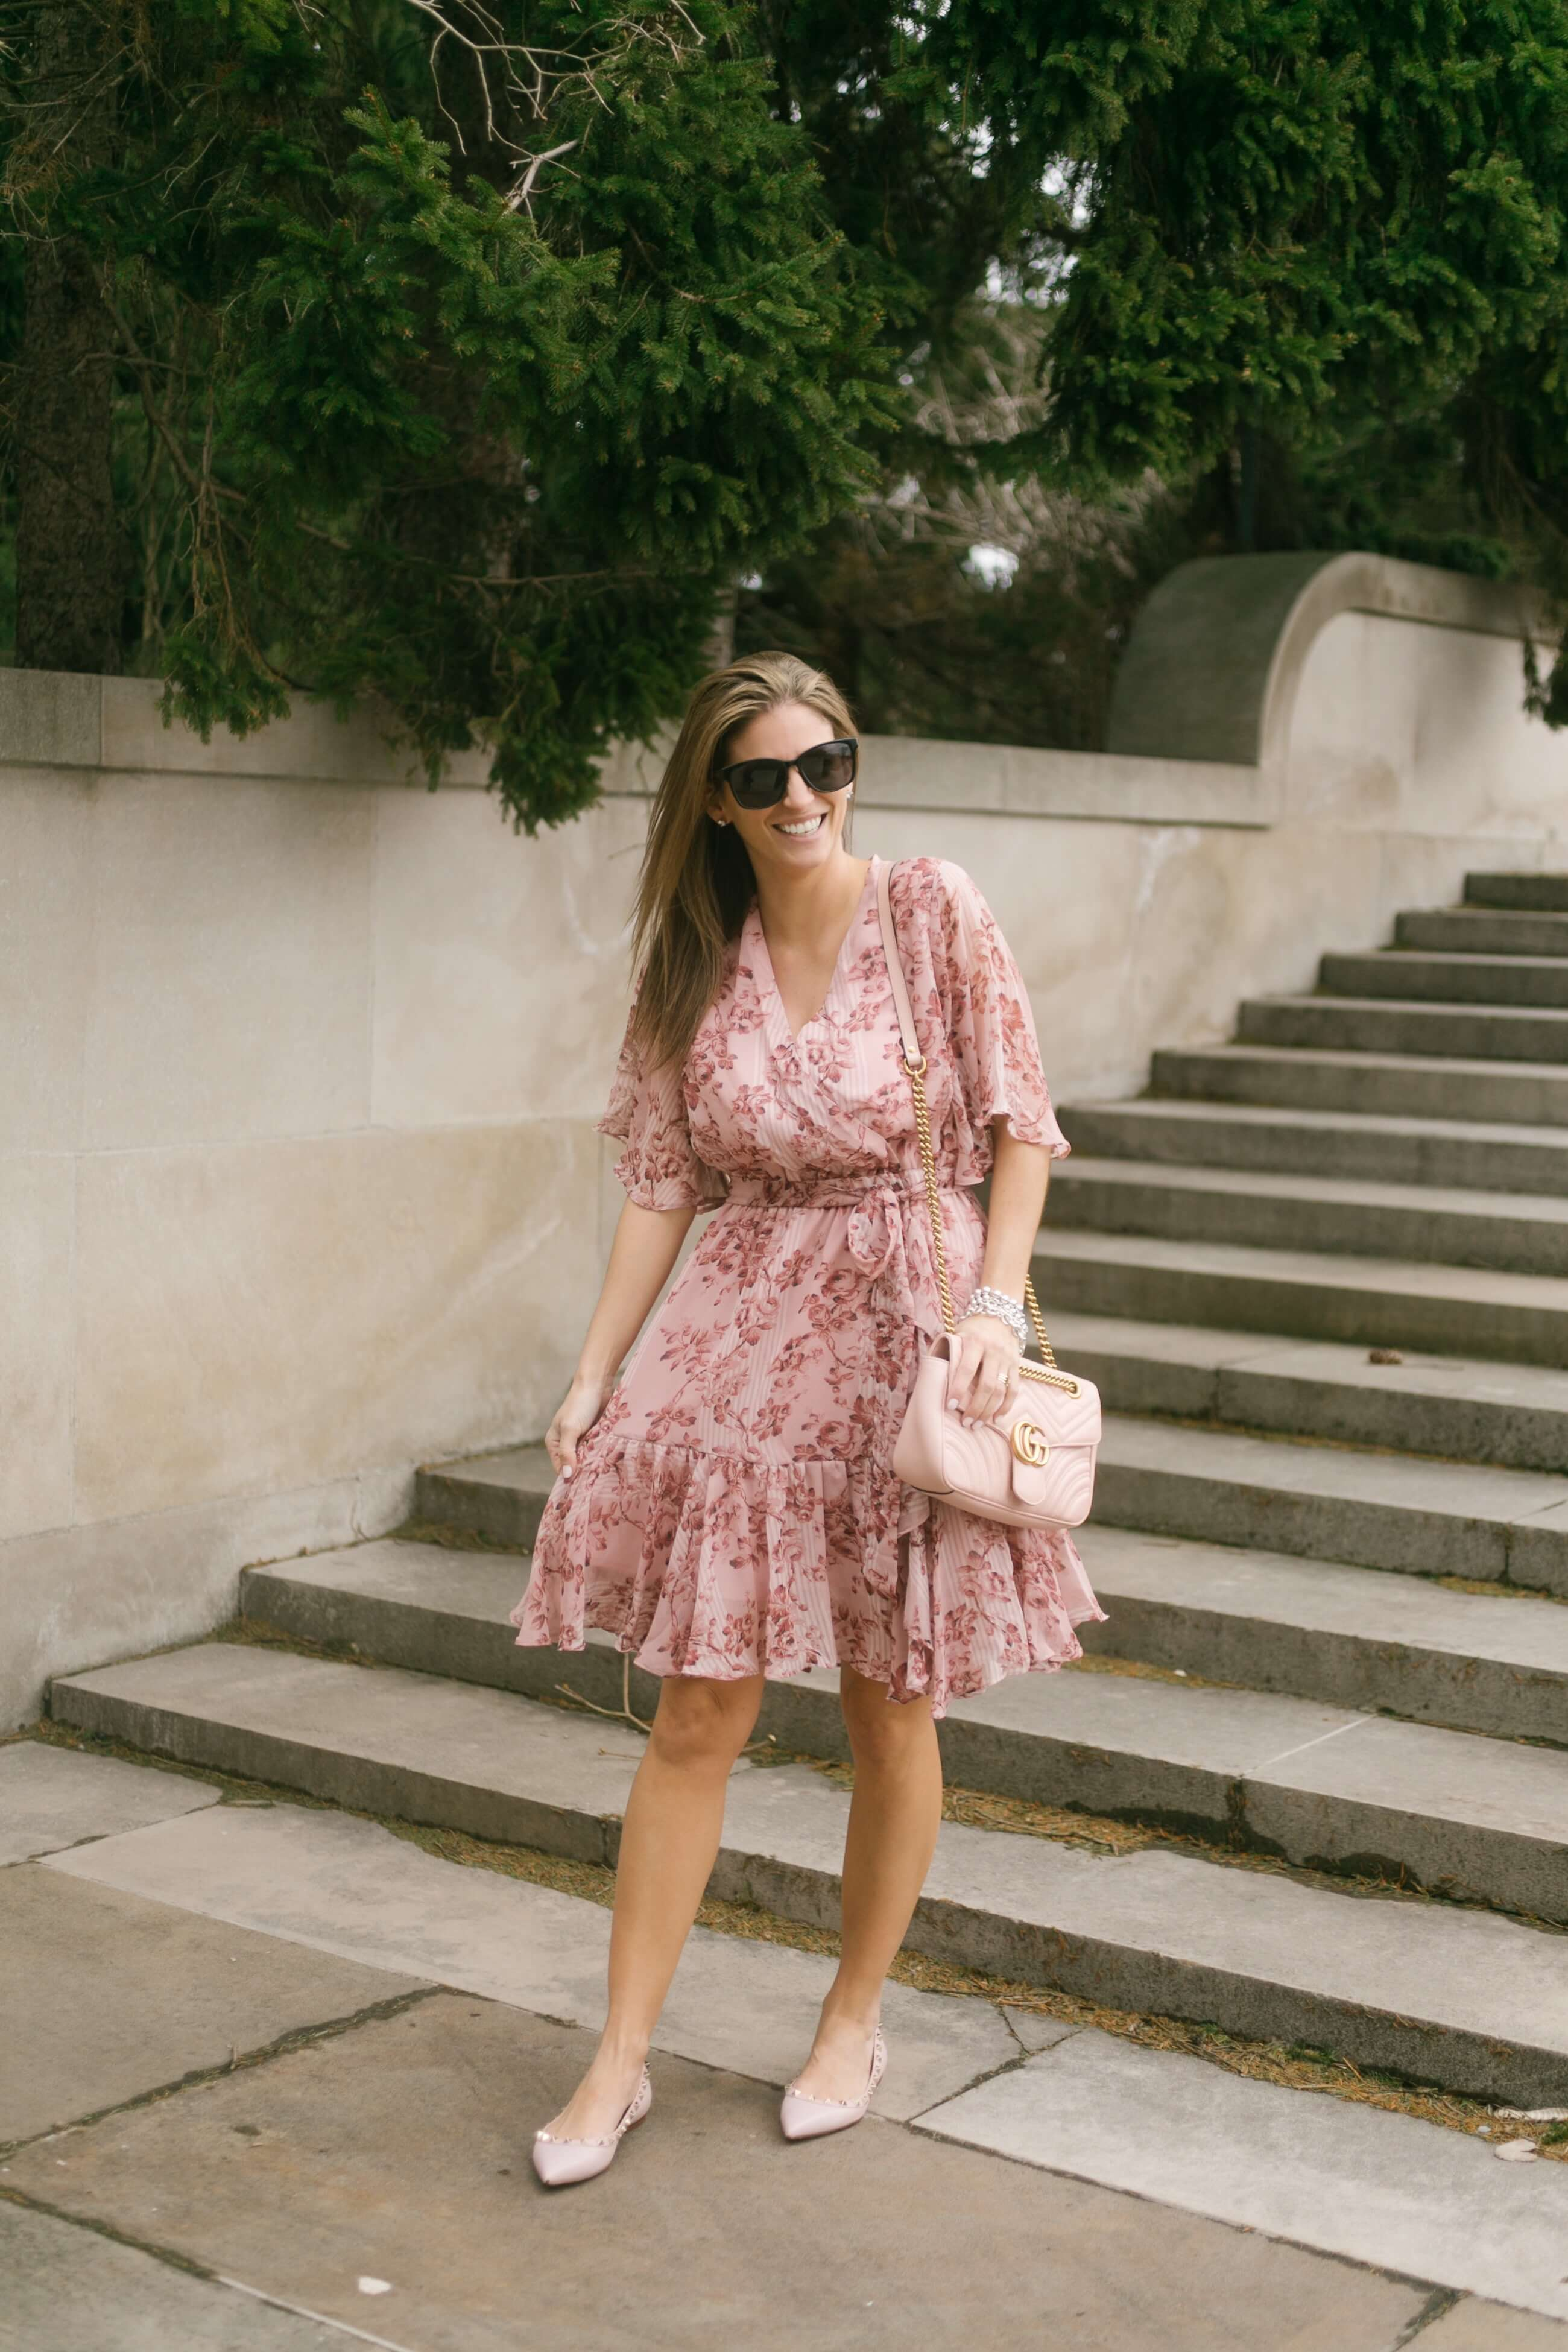 Chicwish Bomb of Love Floral Chiffon Dress in Pink; pretty pink summer dresses; pink gucci bag; pink valentino rock studs; sparkleshinylove whitby blogger mandy furnis